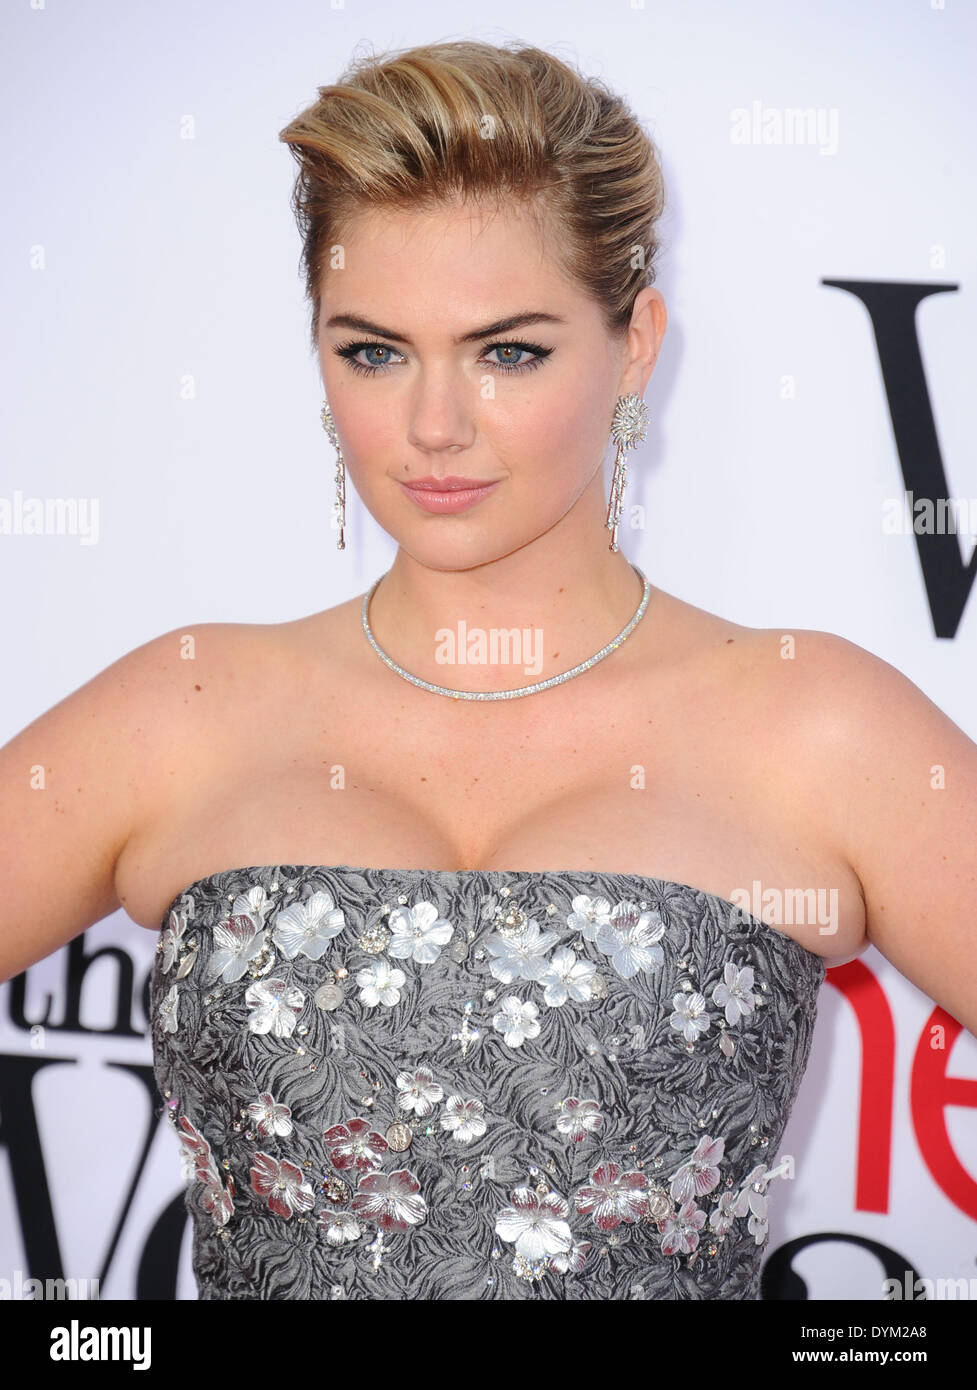 Kate Upton High Resolution Stock Photography And Images Alamy